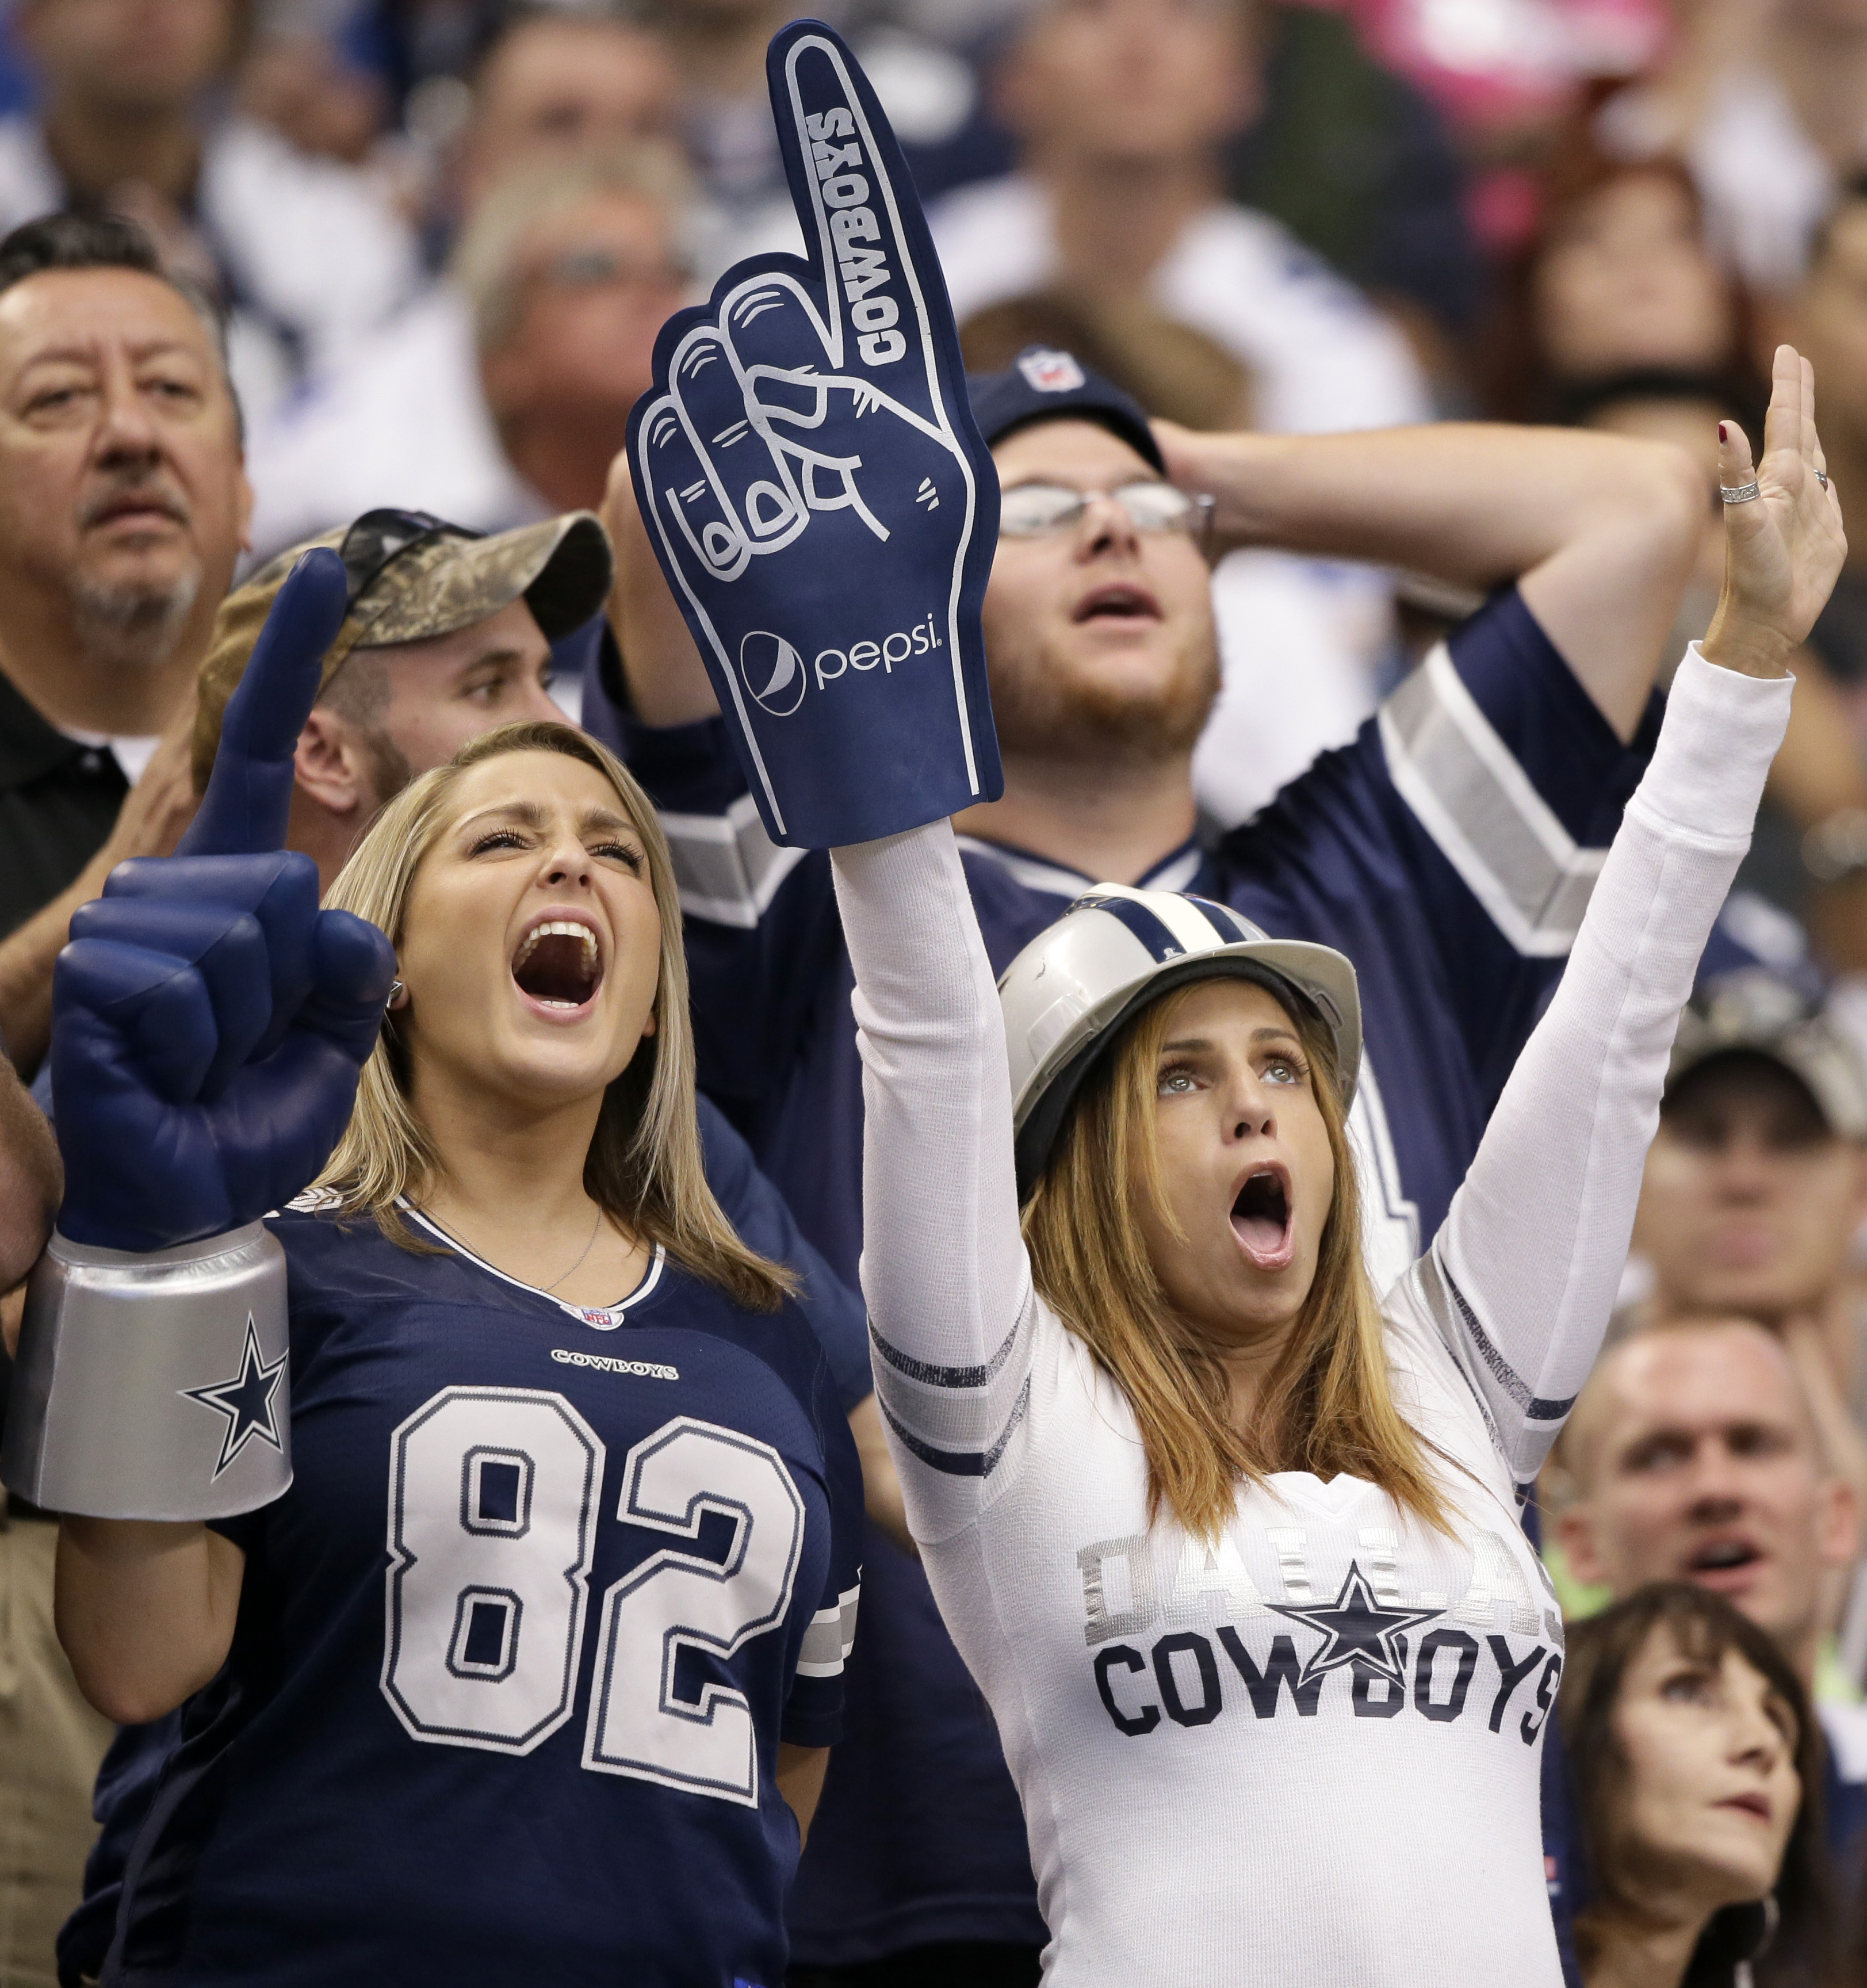 Cowboys Blog - Are You Ready To Get Loud, Cowboys Fans?